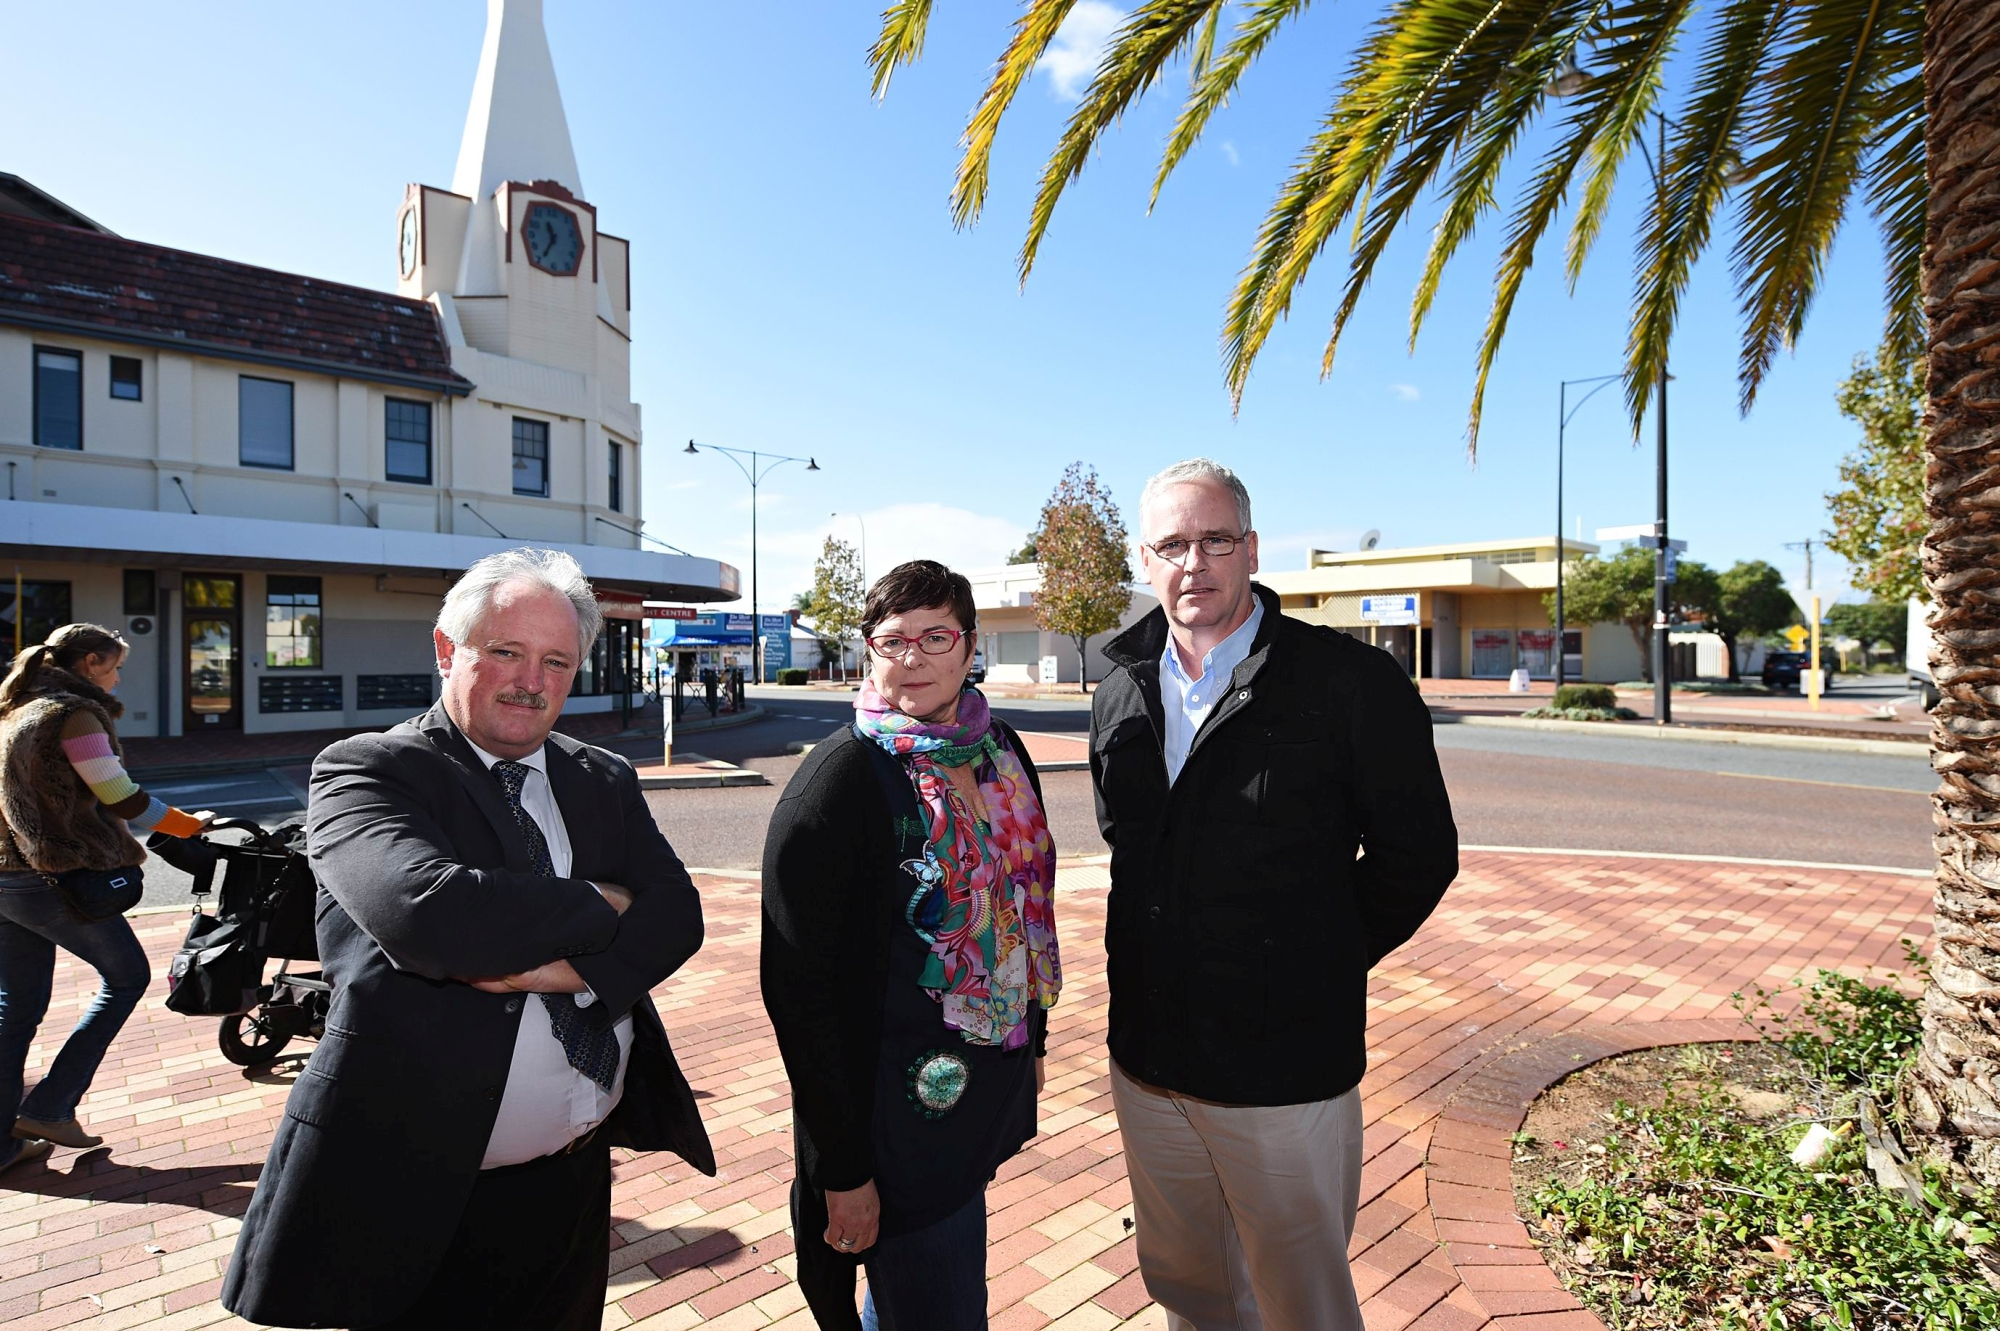 Maylands MLA Lisa Baker with City of Bayswater councillor Barry McKenna (left) and City of Stirling councillor David Lagan in front of Inglewood Clock Tower. Picture: Marcus Whisson www.communitypix.com.au d420581